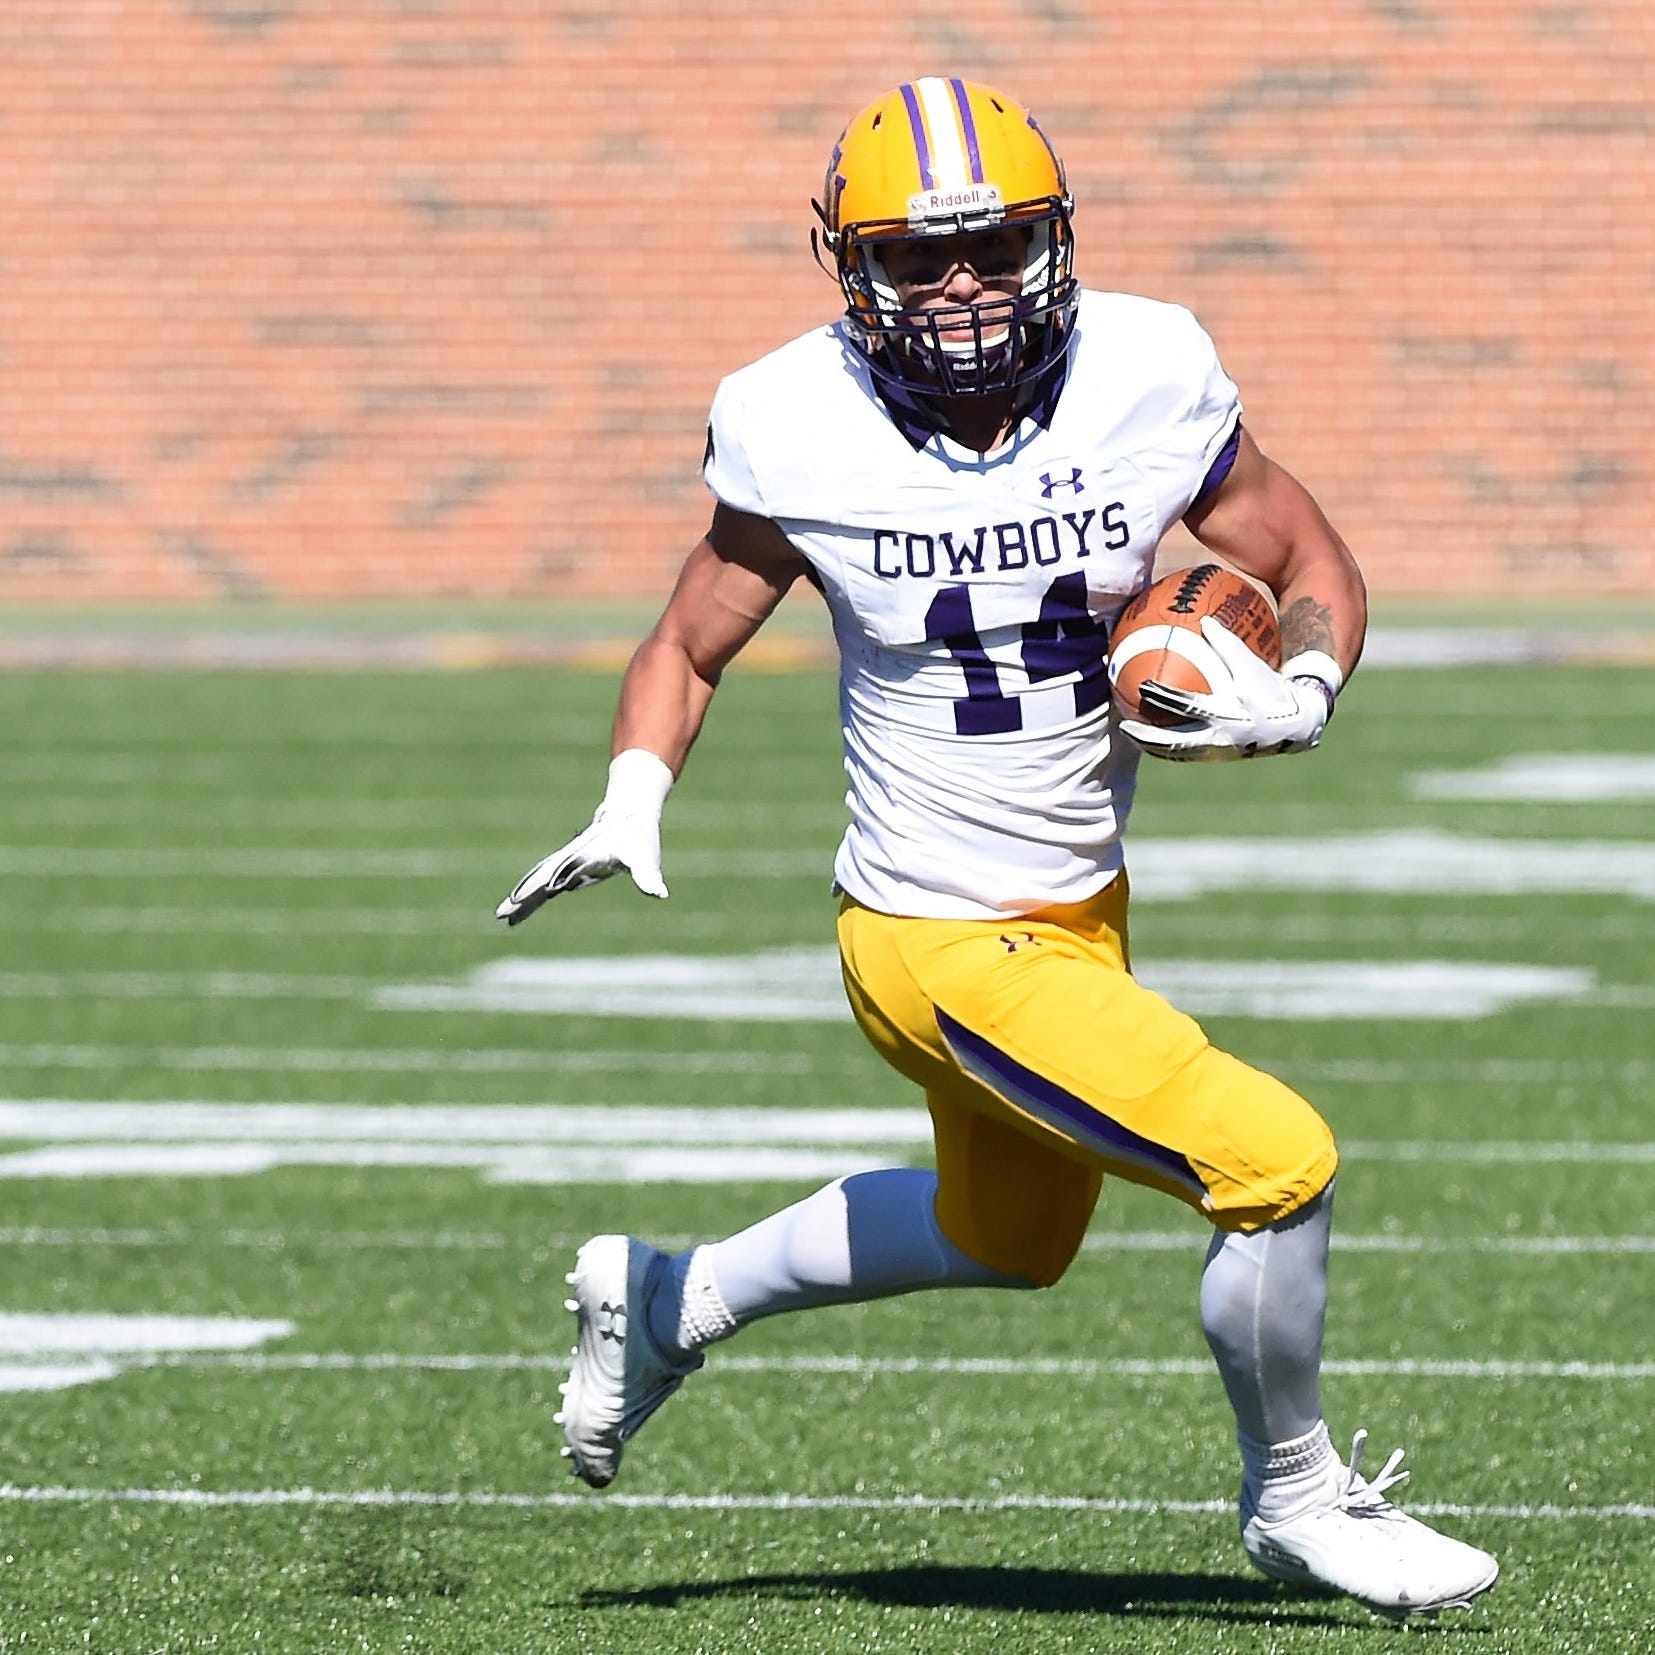 Another first-round playoff exit for Hardin-Simmons football against UMHB